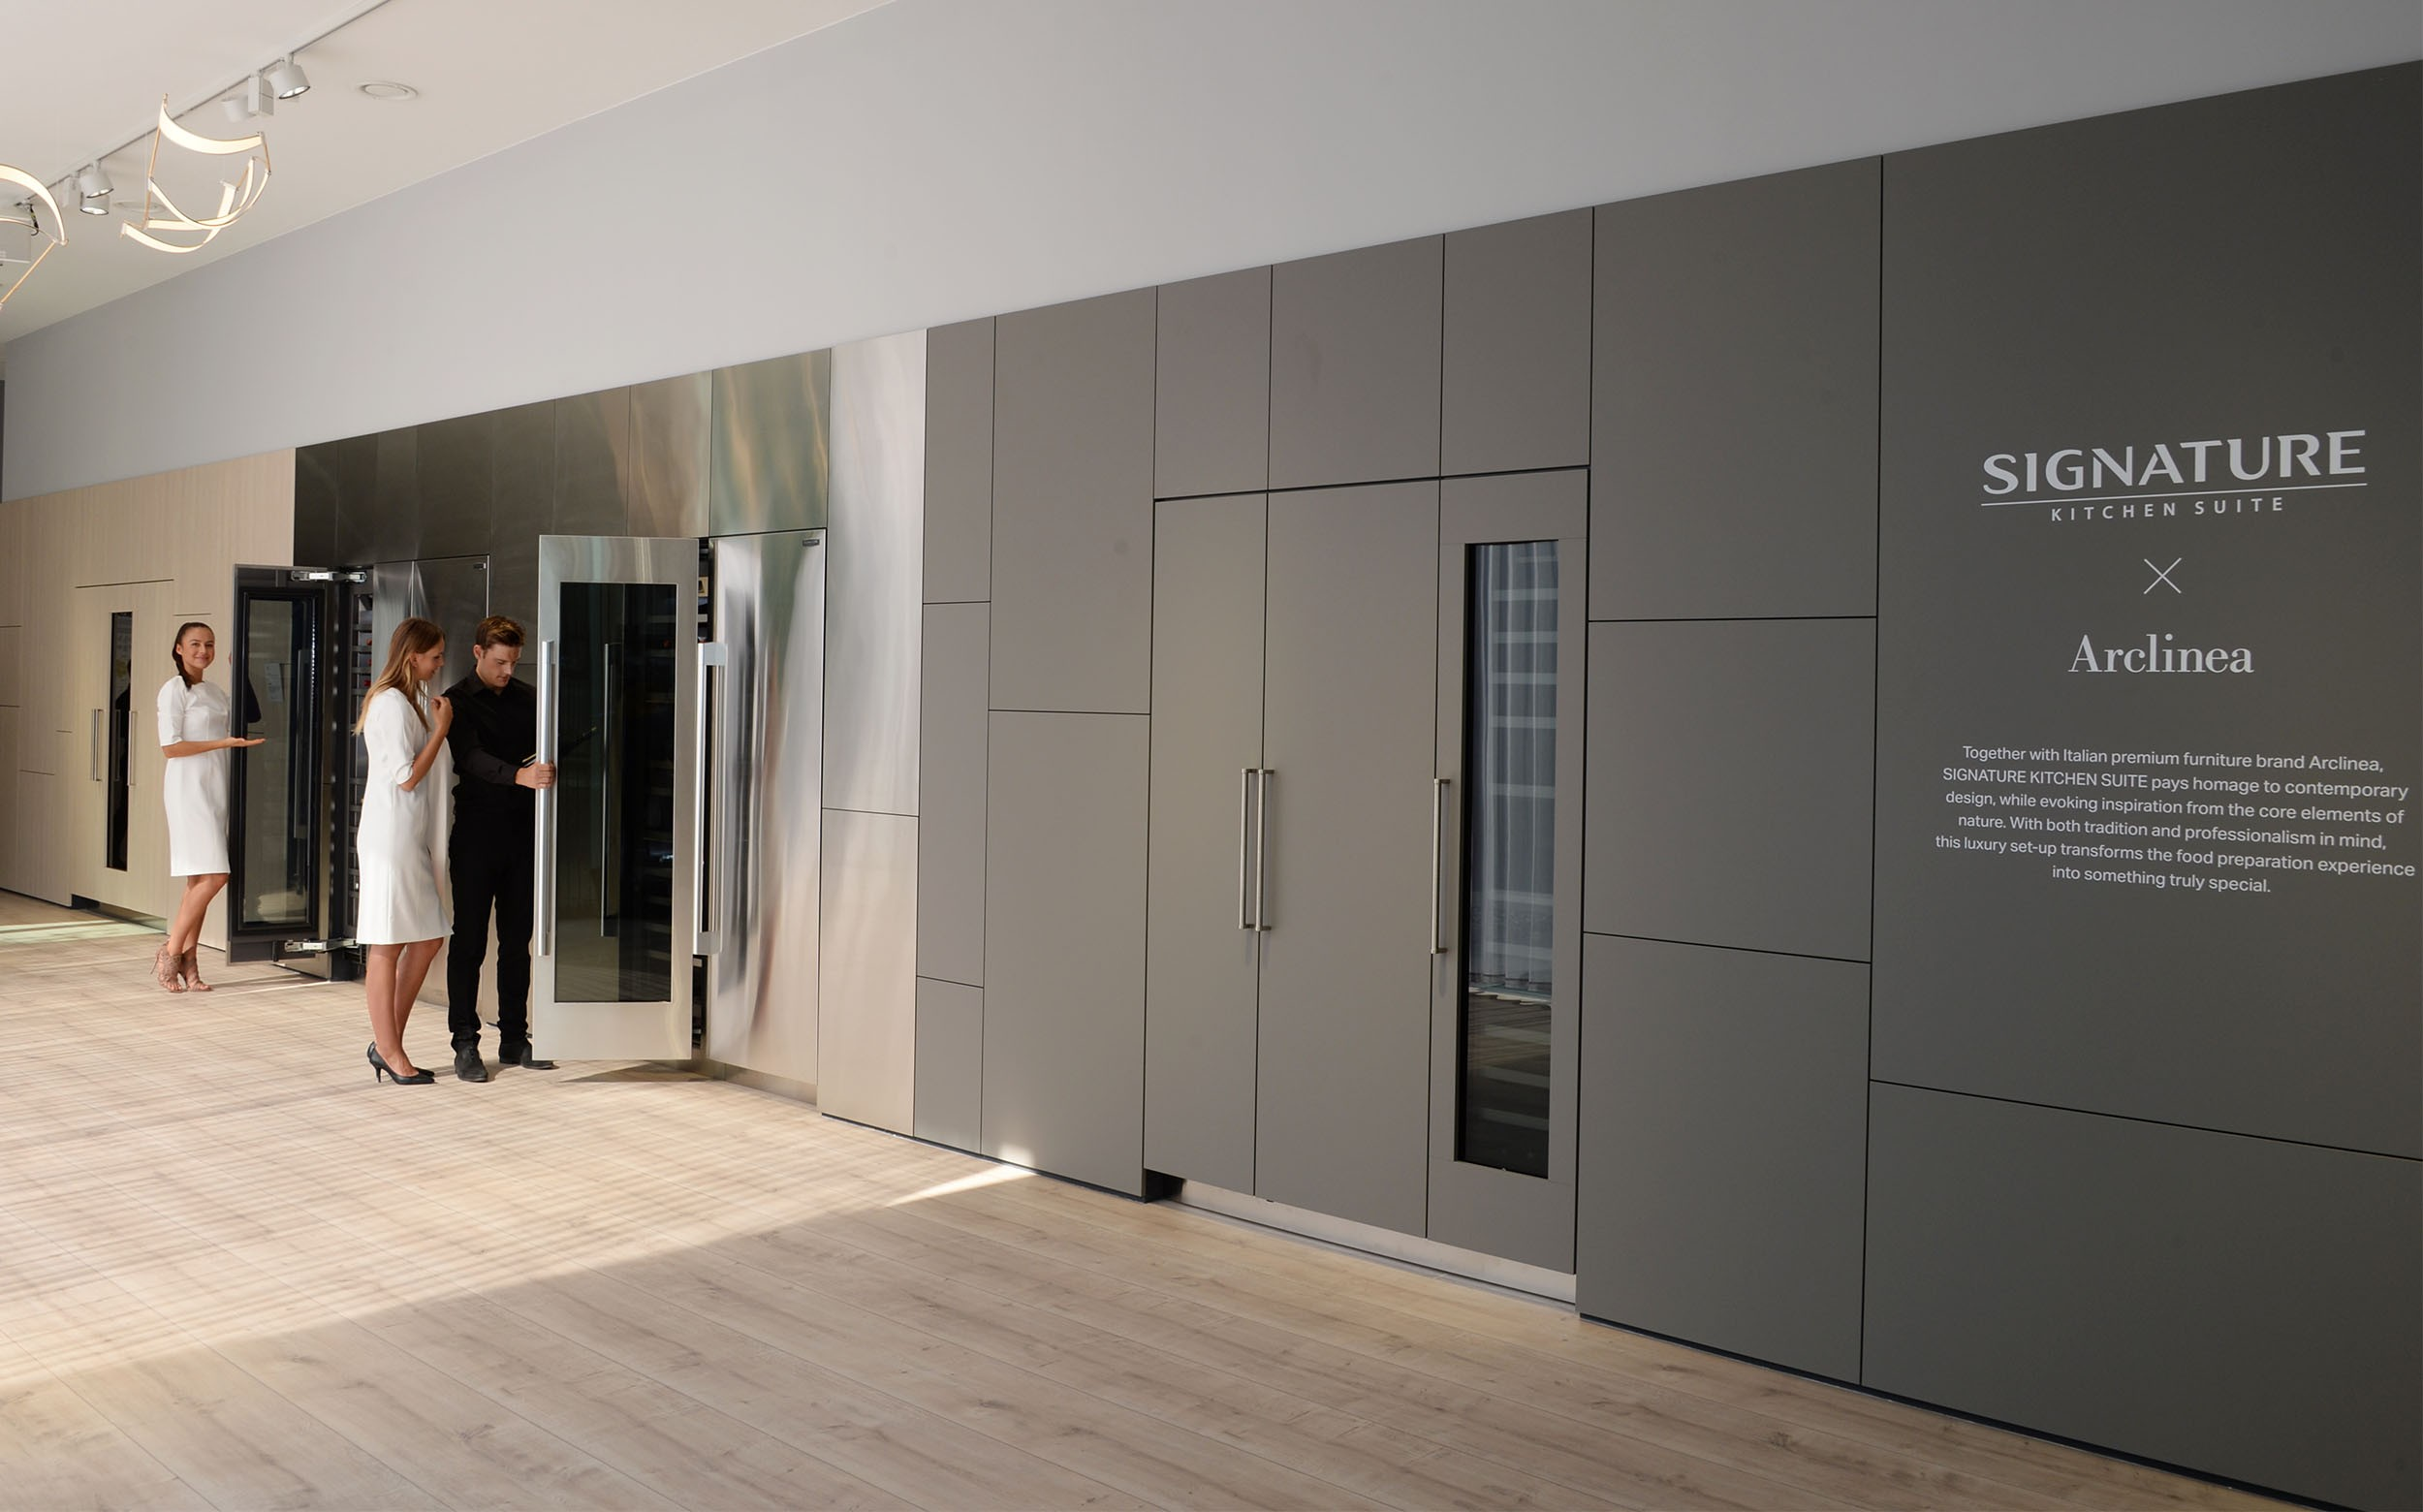 2 women and 1 man viewing wine cellars at SIGNATURE KITCHEN SUITE's exhibition hall cooperated with Arclinea at IFA 2018